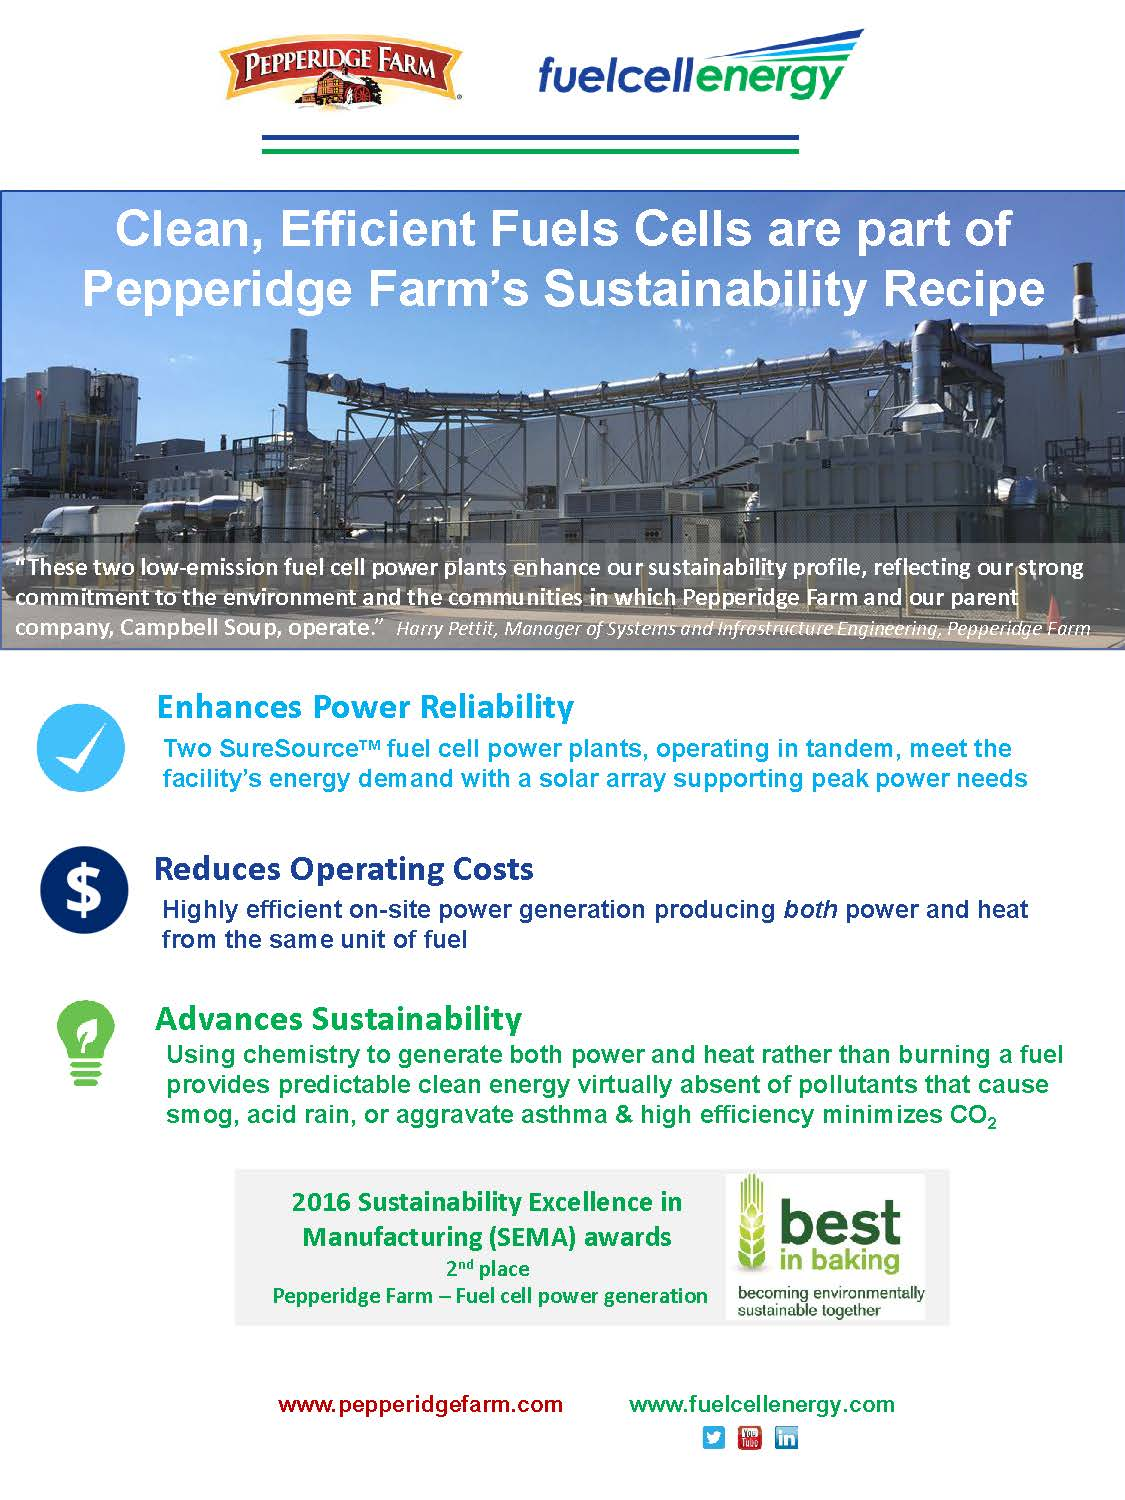 FuelCell Energy on Twitter: